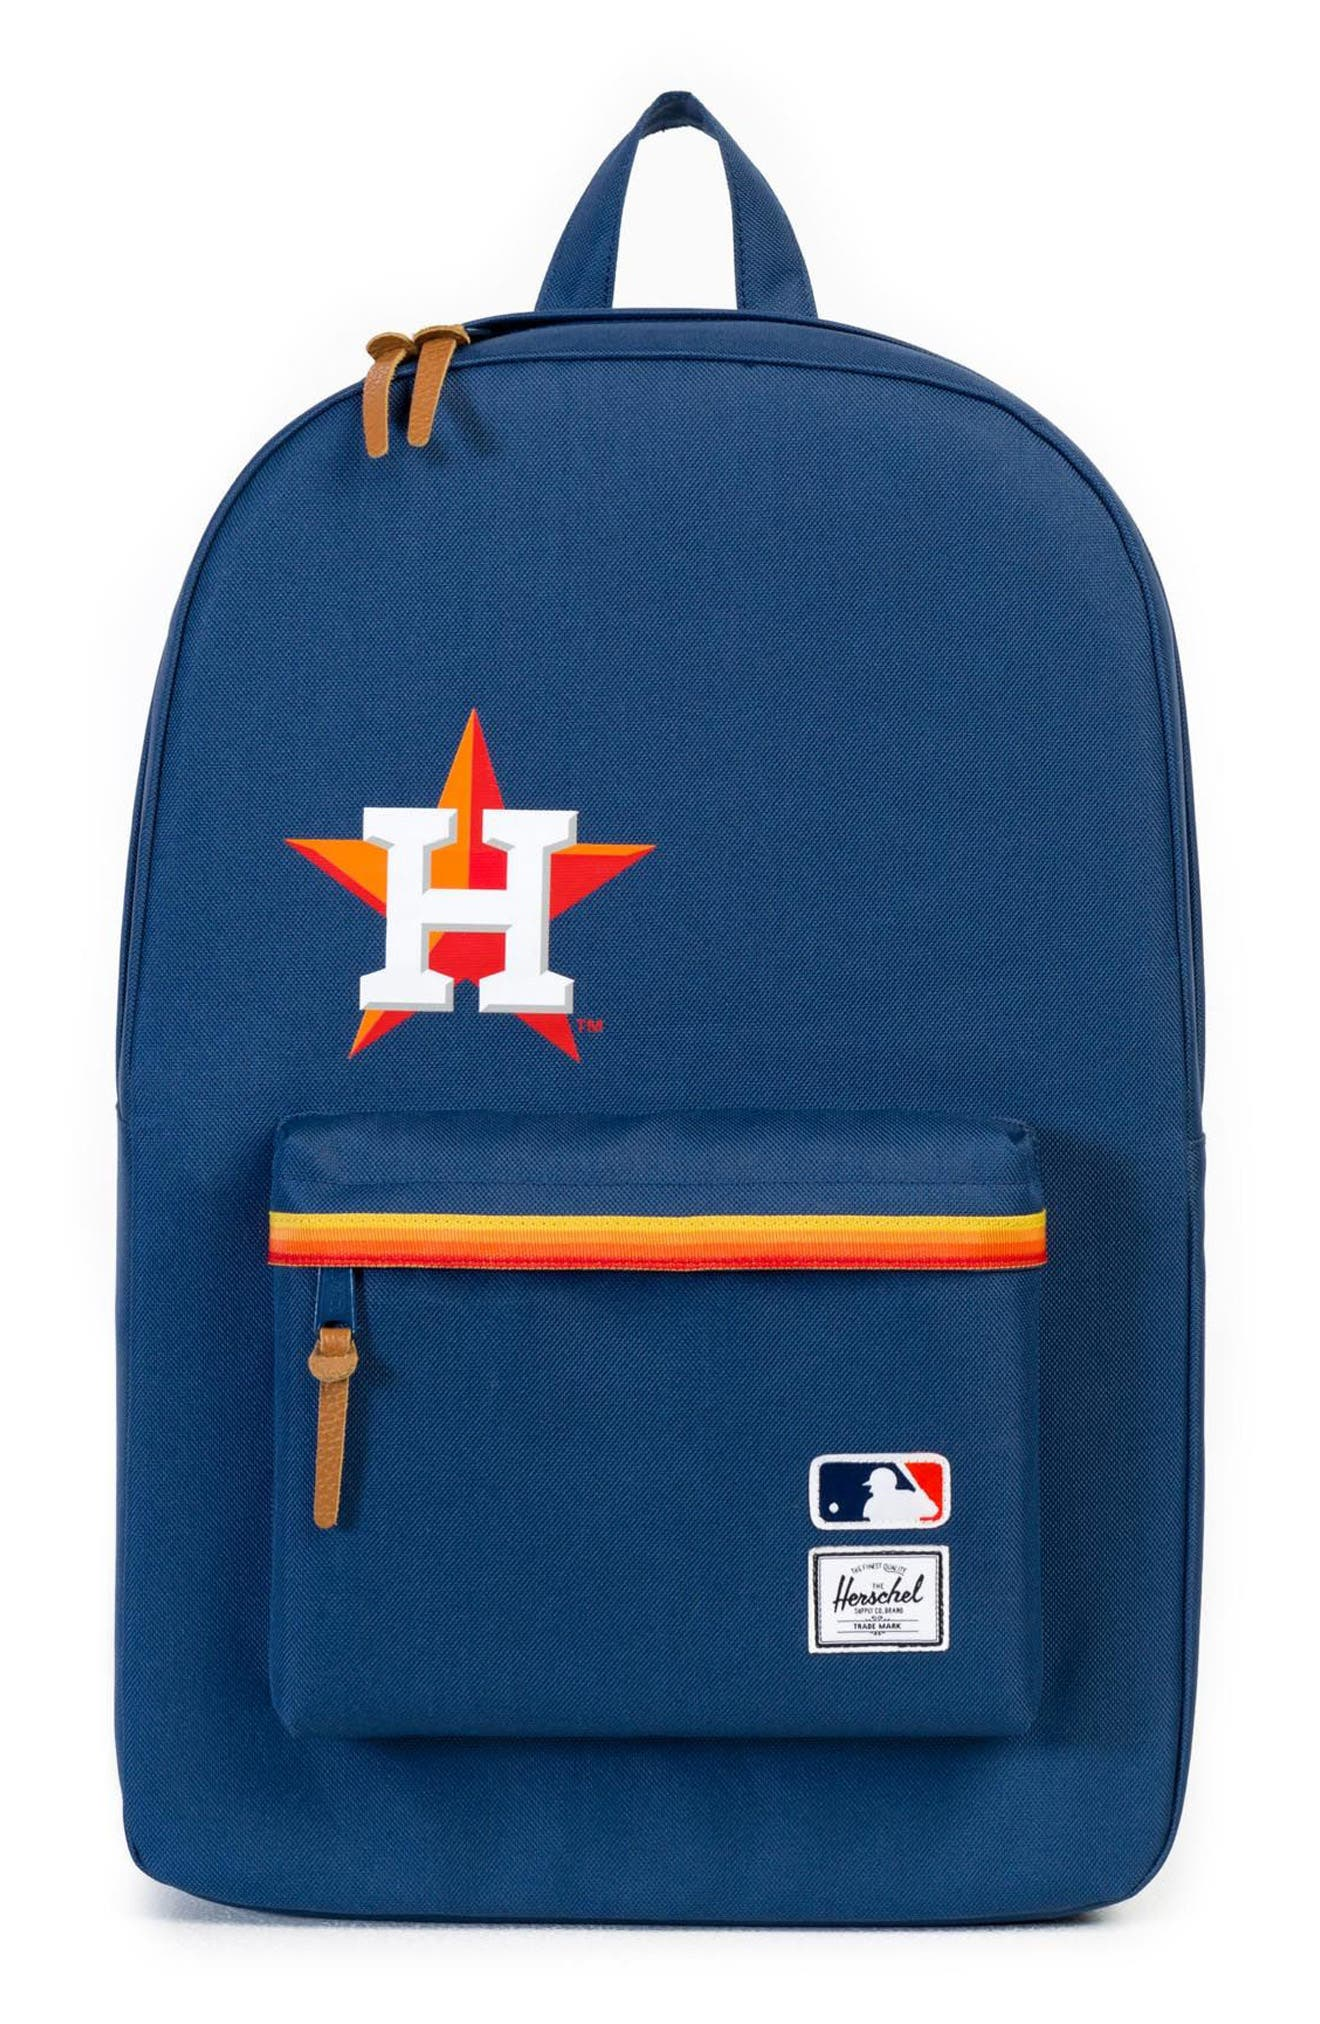 Heritage - MLB American League Backpack,                             Main thumbnail 1, color,                             Houston Astros